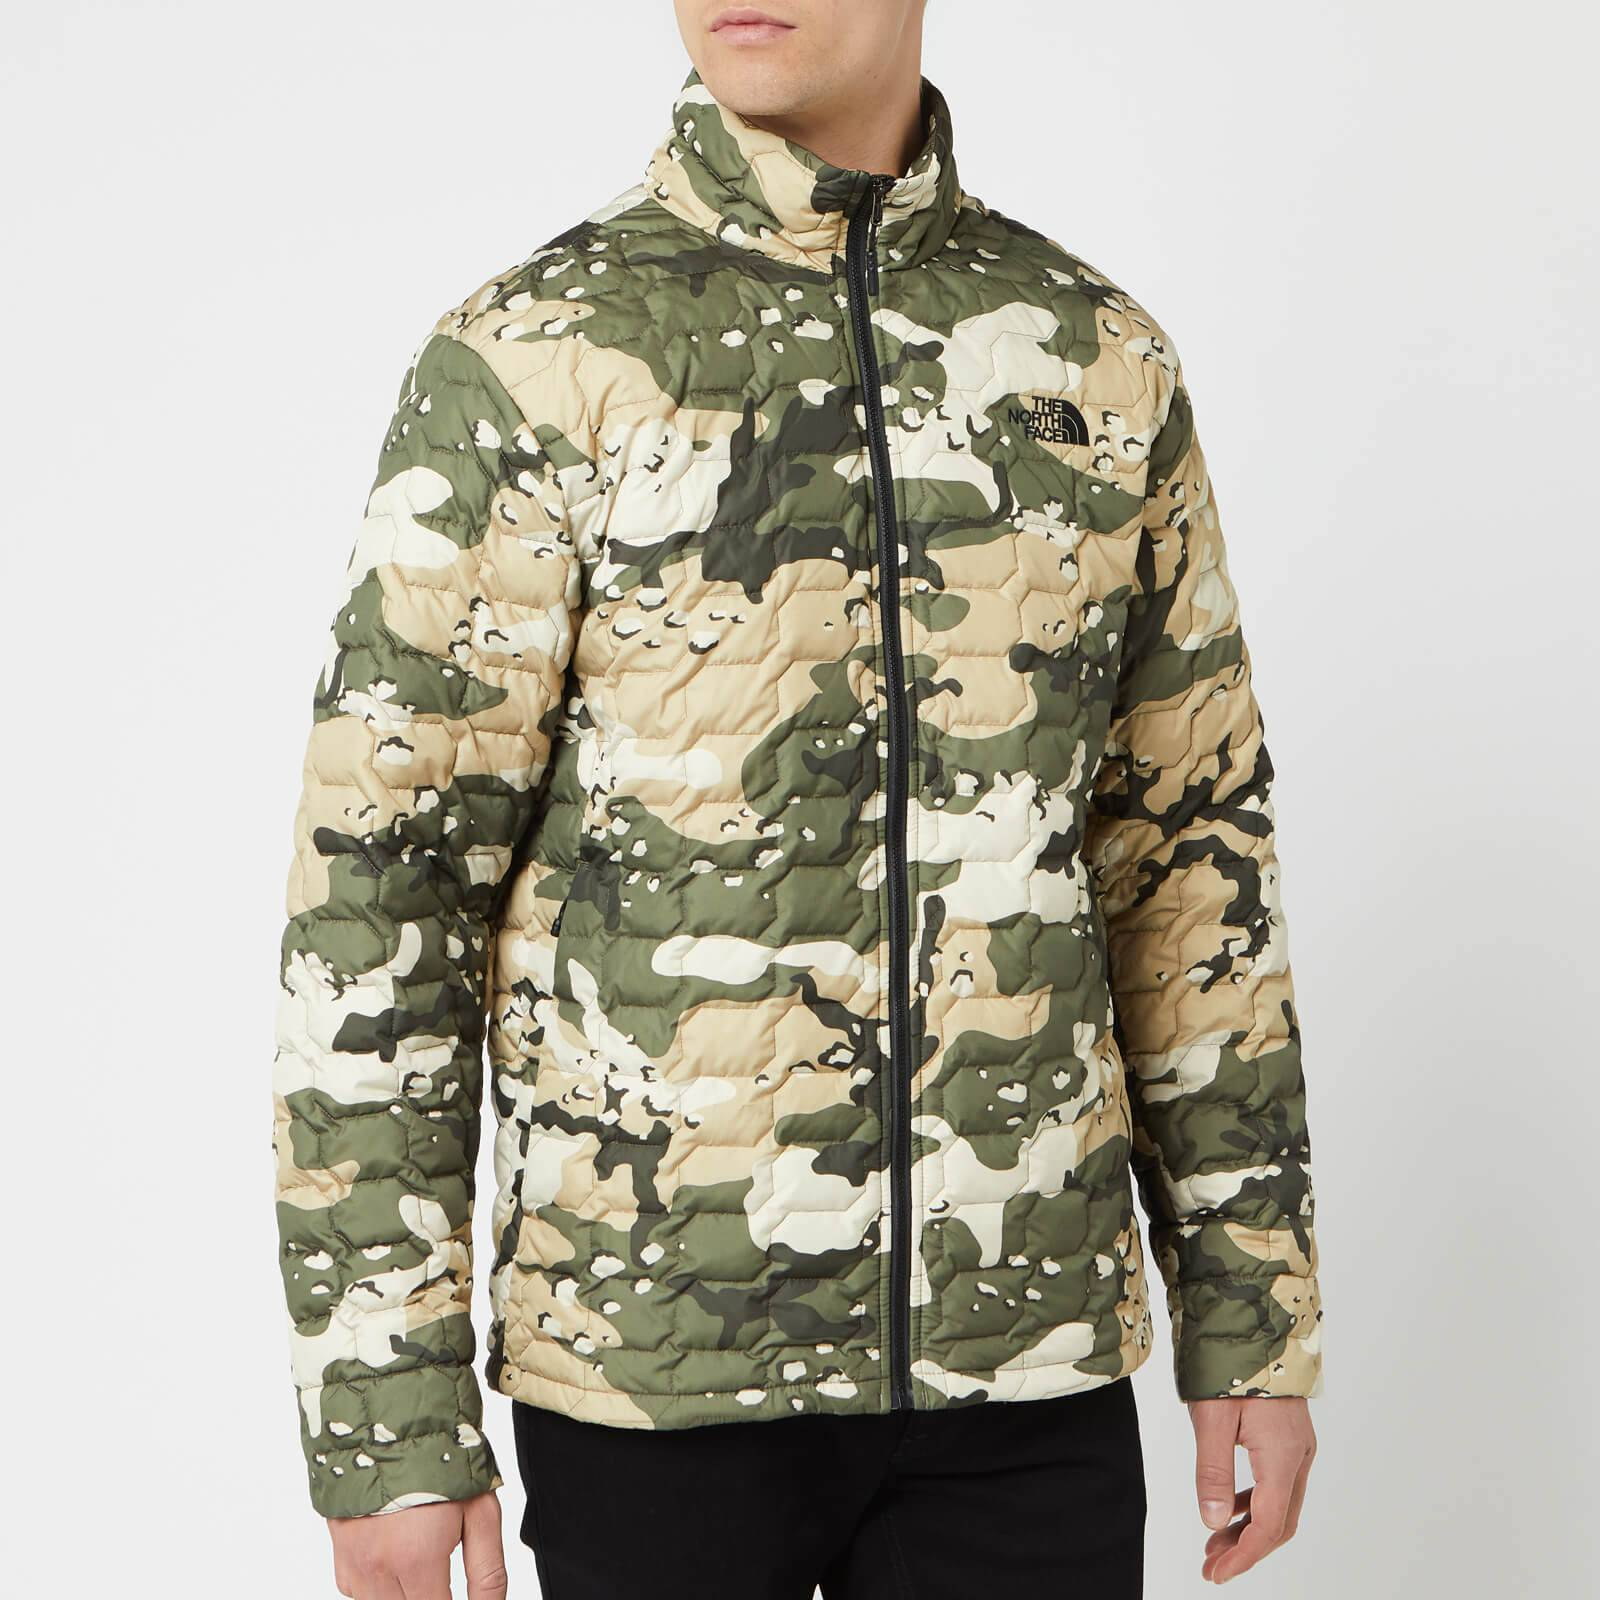 The North Face Men's Thermoball Jacket - Peyote Beige Woodchip Camp Print - XL